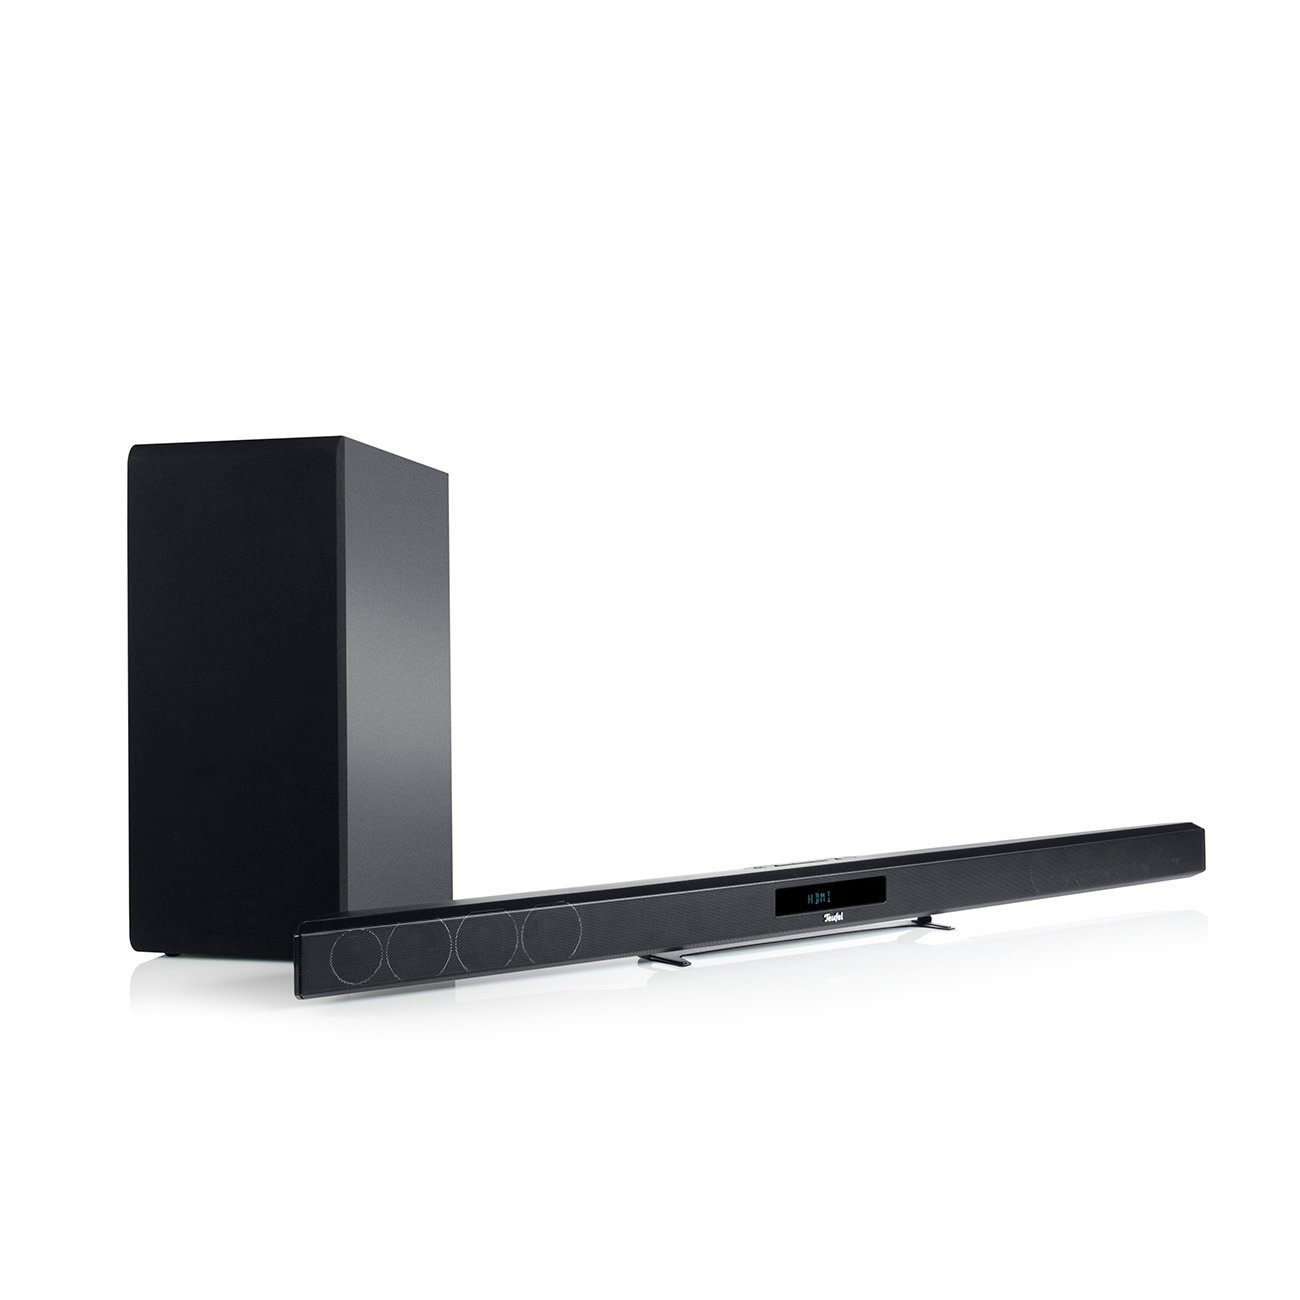 Teufel Heimkino Soundbar »Cinebar 11 2.1-Set«